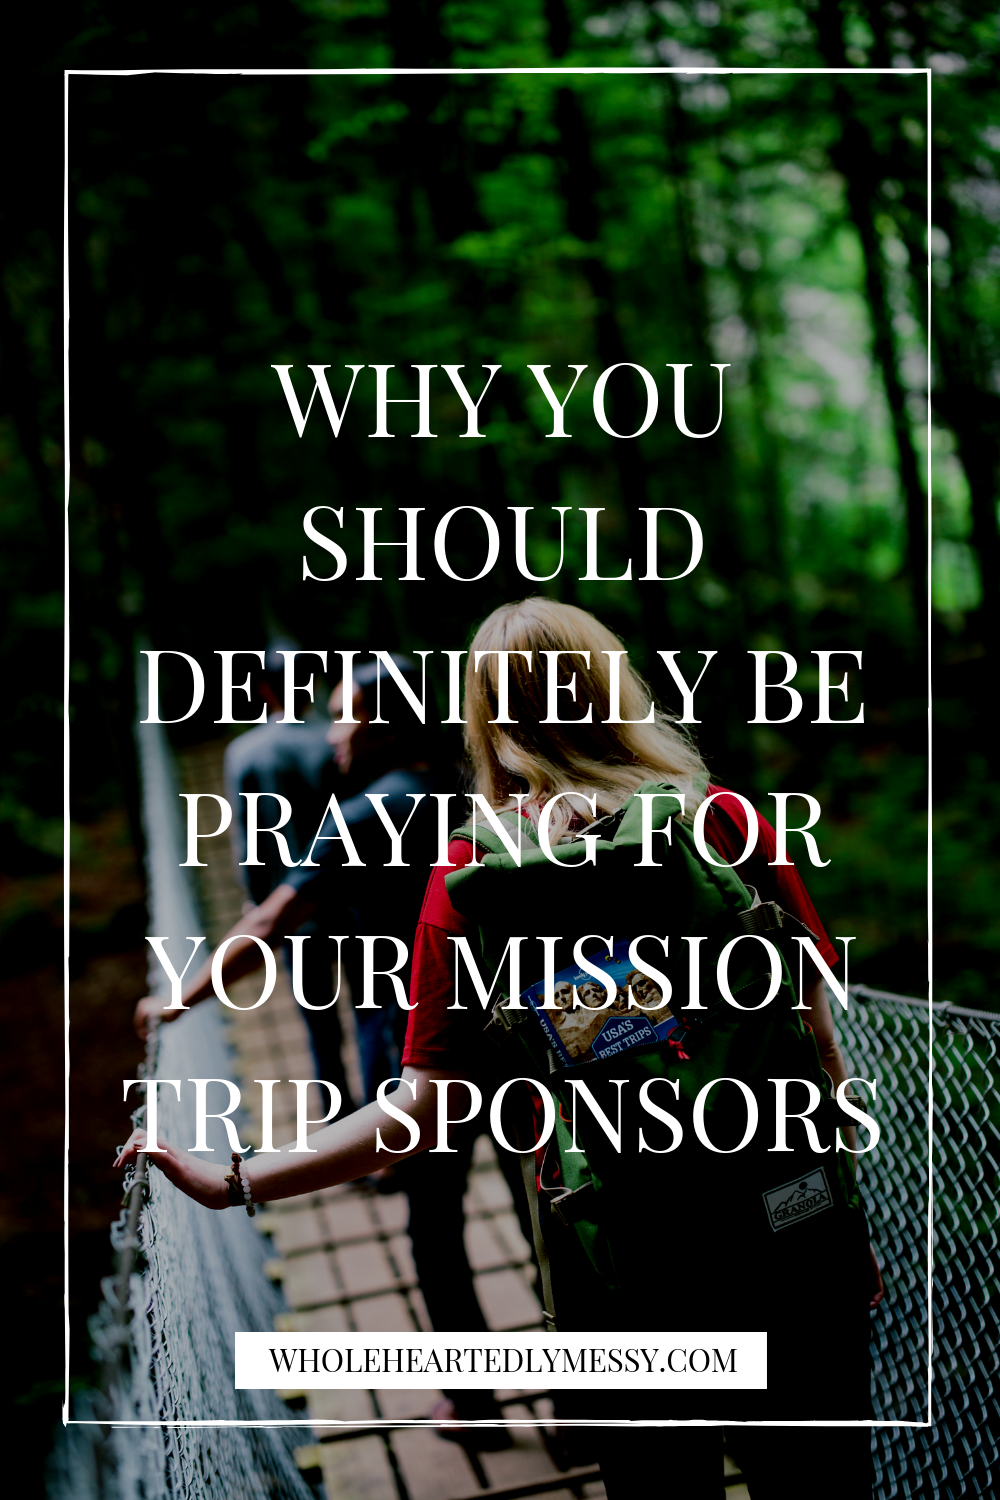 WHY & WHAT YOU NEED TO BE PRAYING FOR YOUR MISSION TRIP SPONSORS-3.png